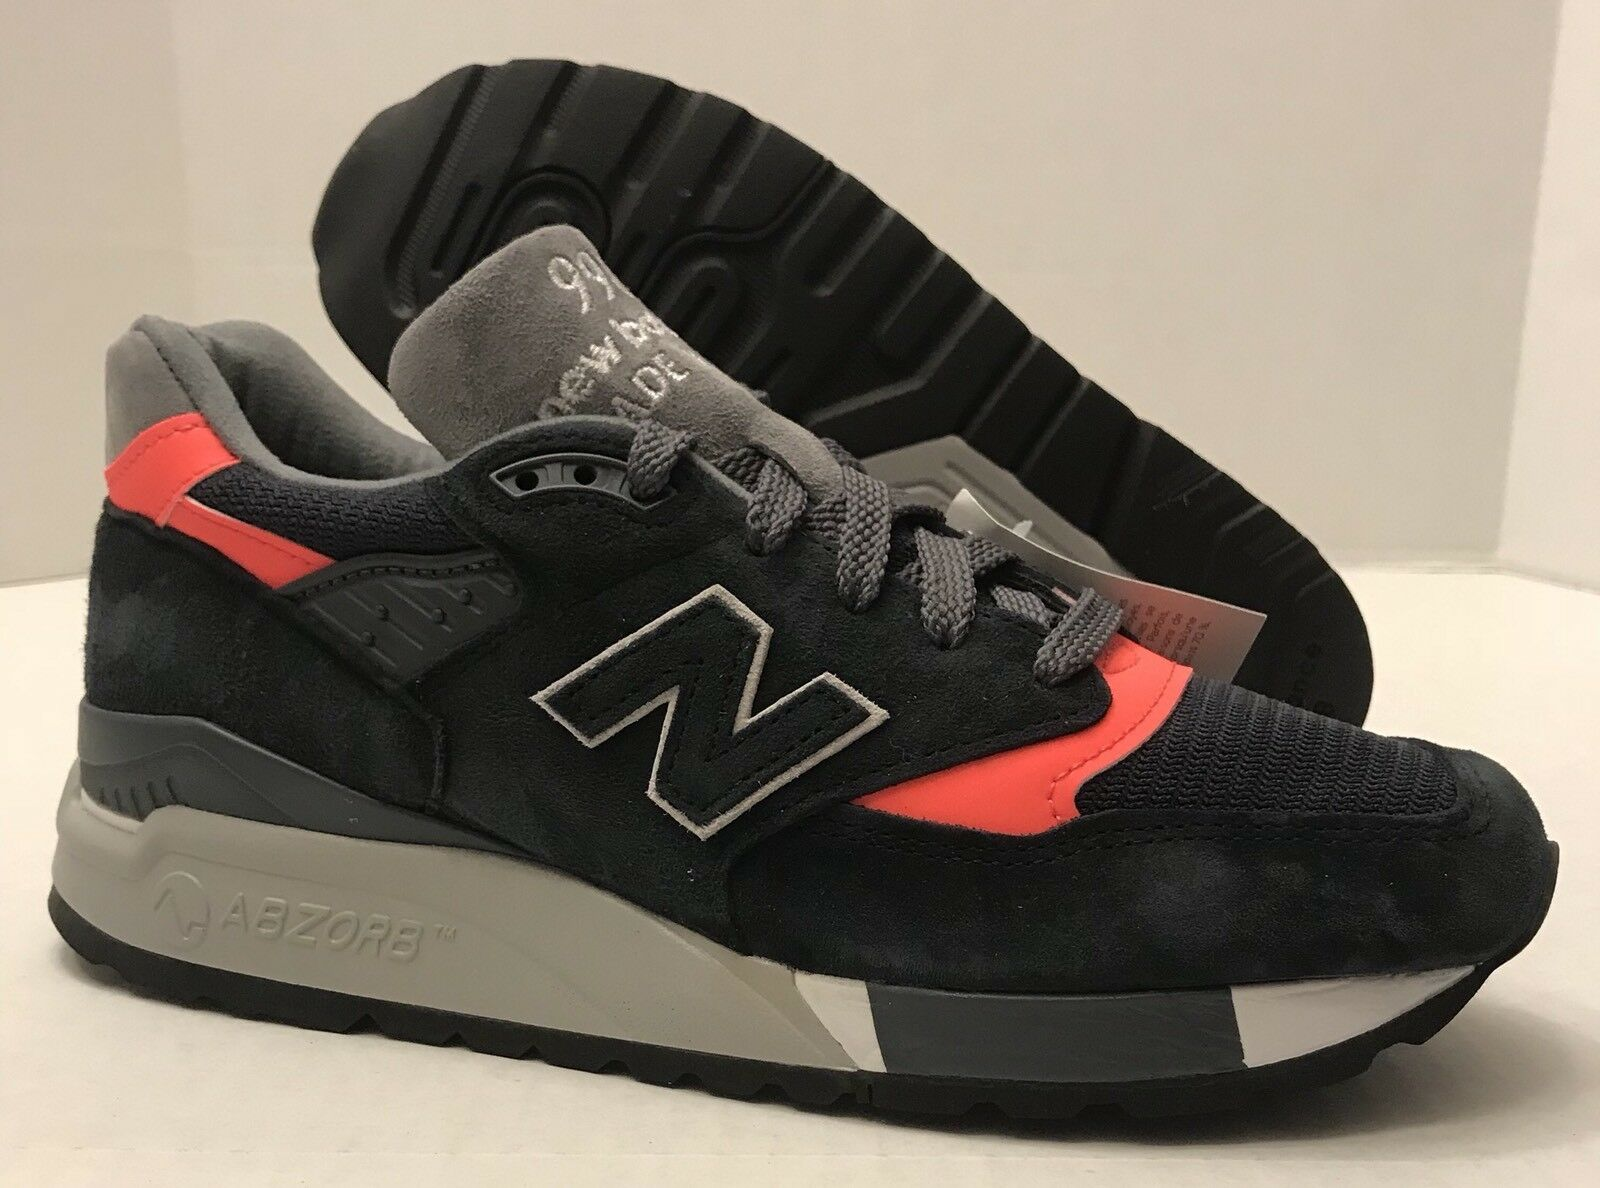 NEW BALANCE 998 Suede Shoes Made NAVY/PINK in The USA M998APC NAVY/PINK Made (MEN'S 6.5) NO BOX 26c62b